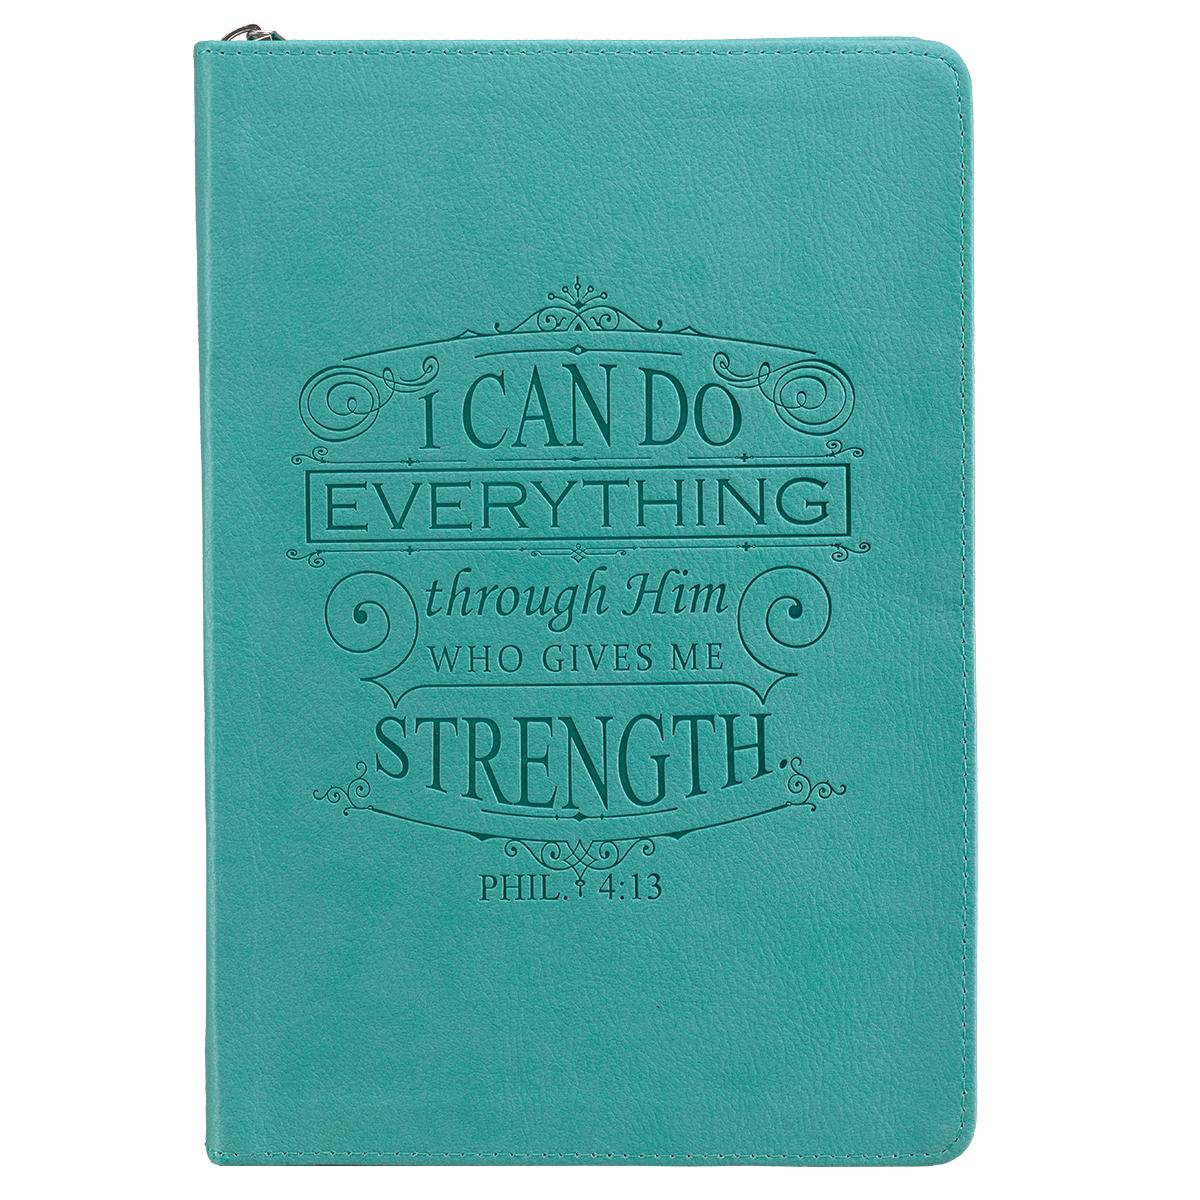 I Can Do Everything: Teal Lux-Leather Journal with Zipper (Hardcover)